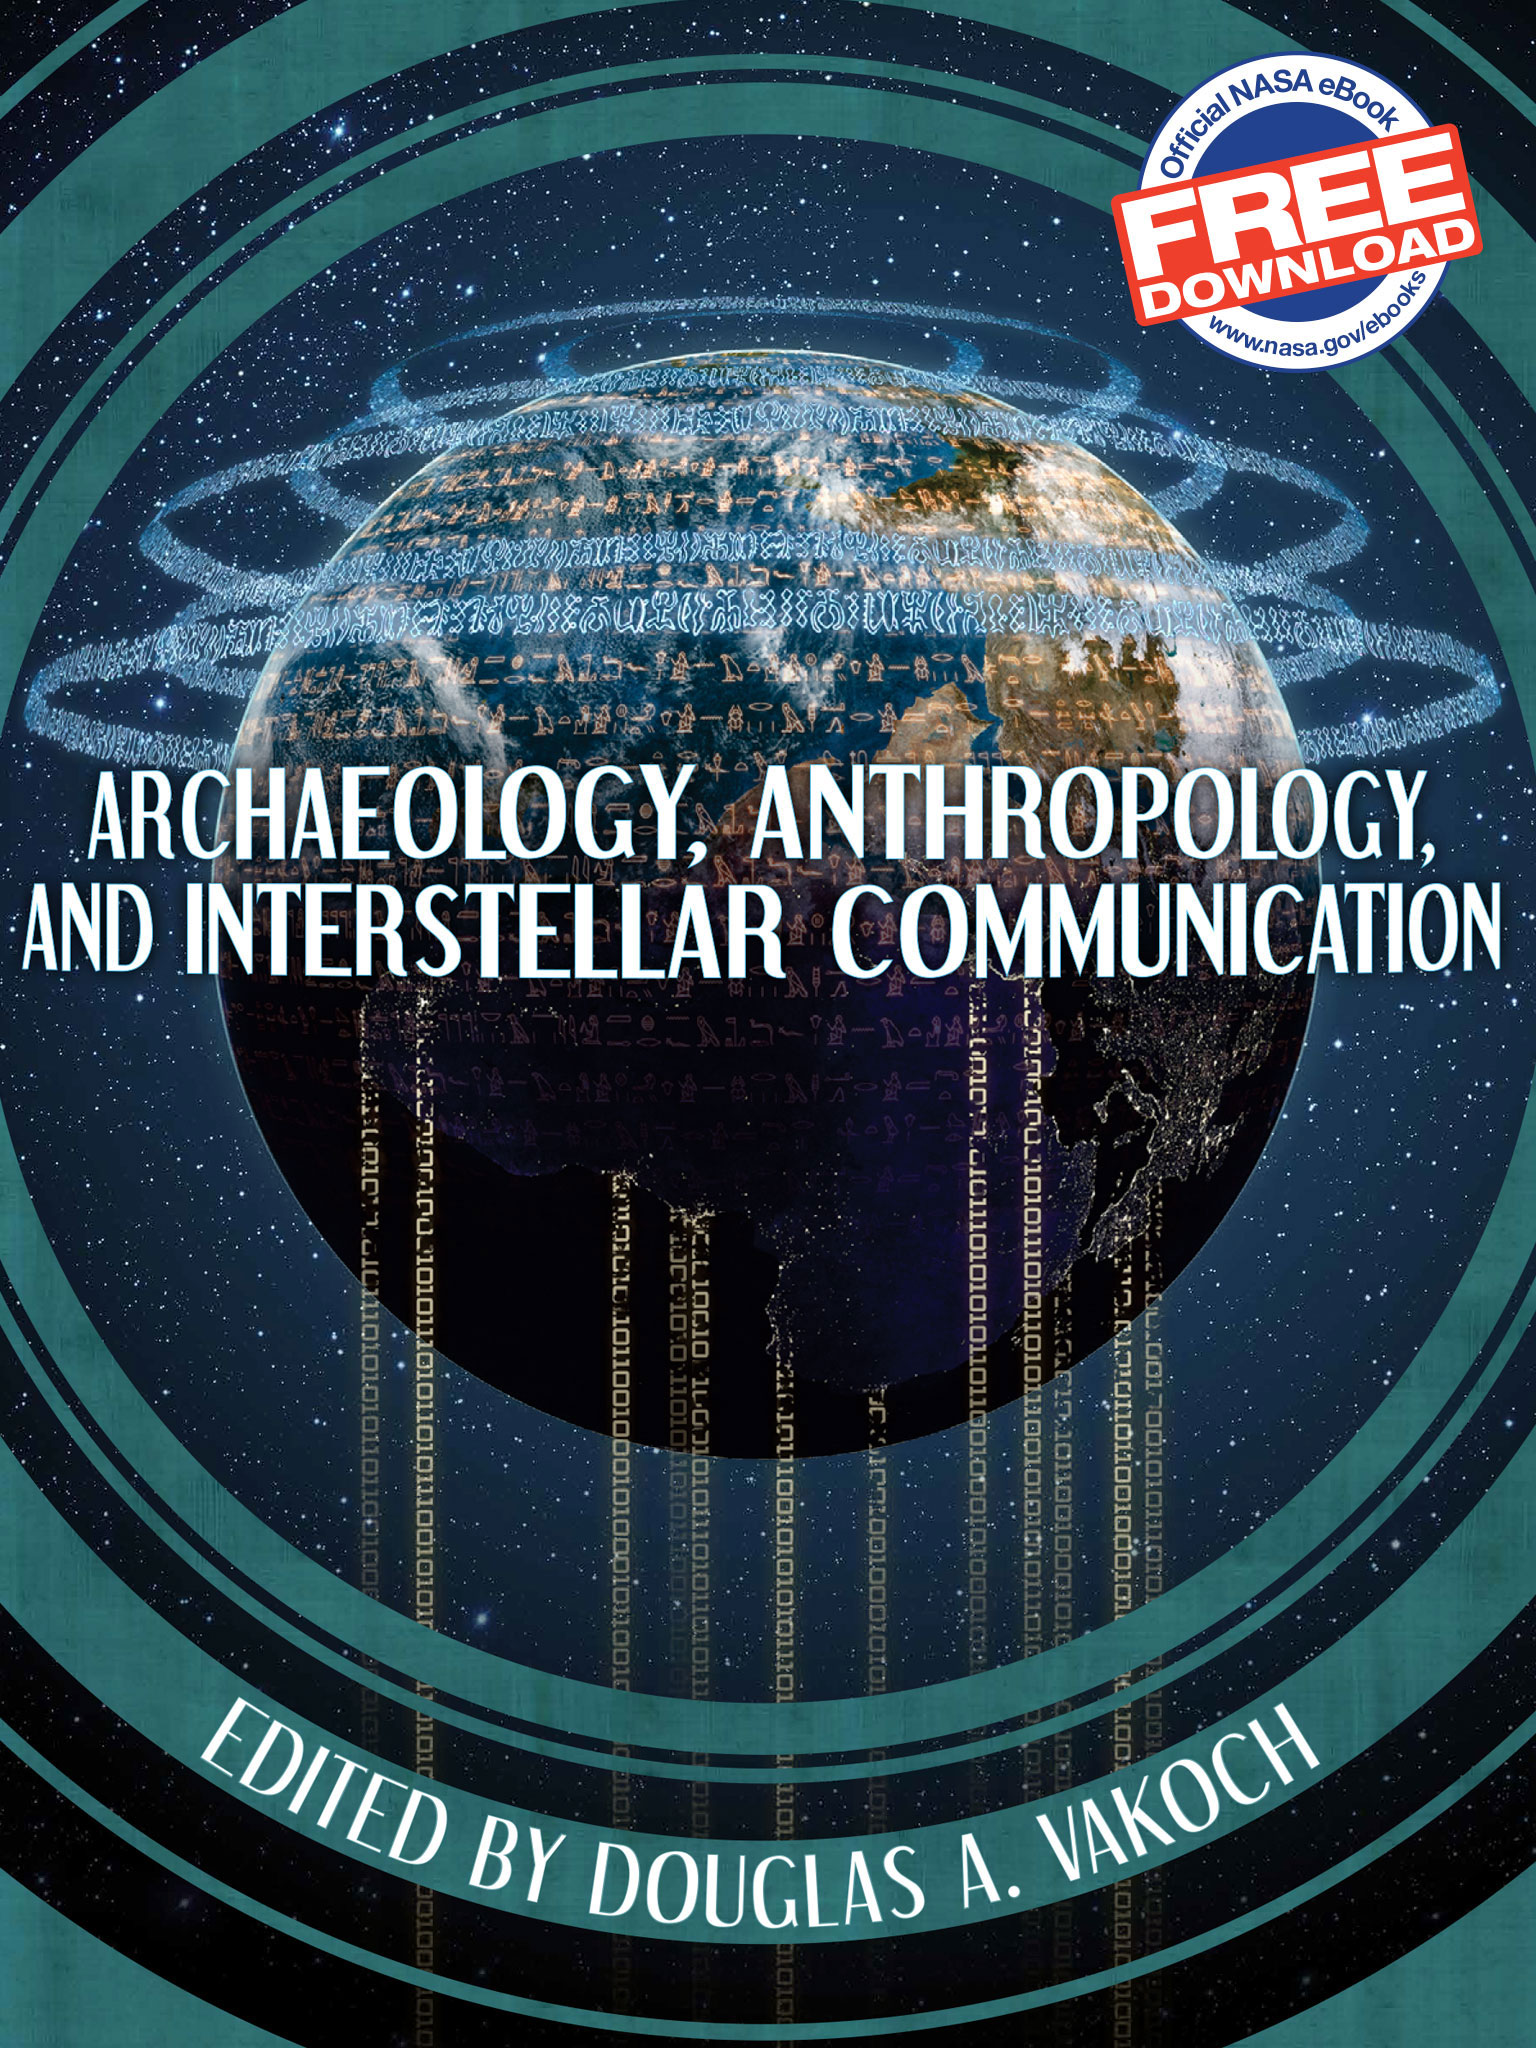 http://www.nasa.gov/sites/default/files/archaeology_anthropology_and_interstellar_communication-cover.jpg